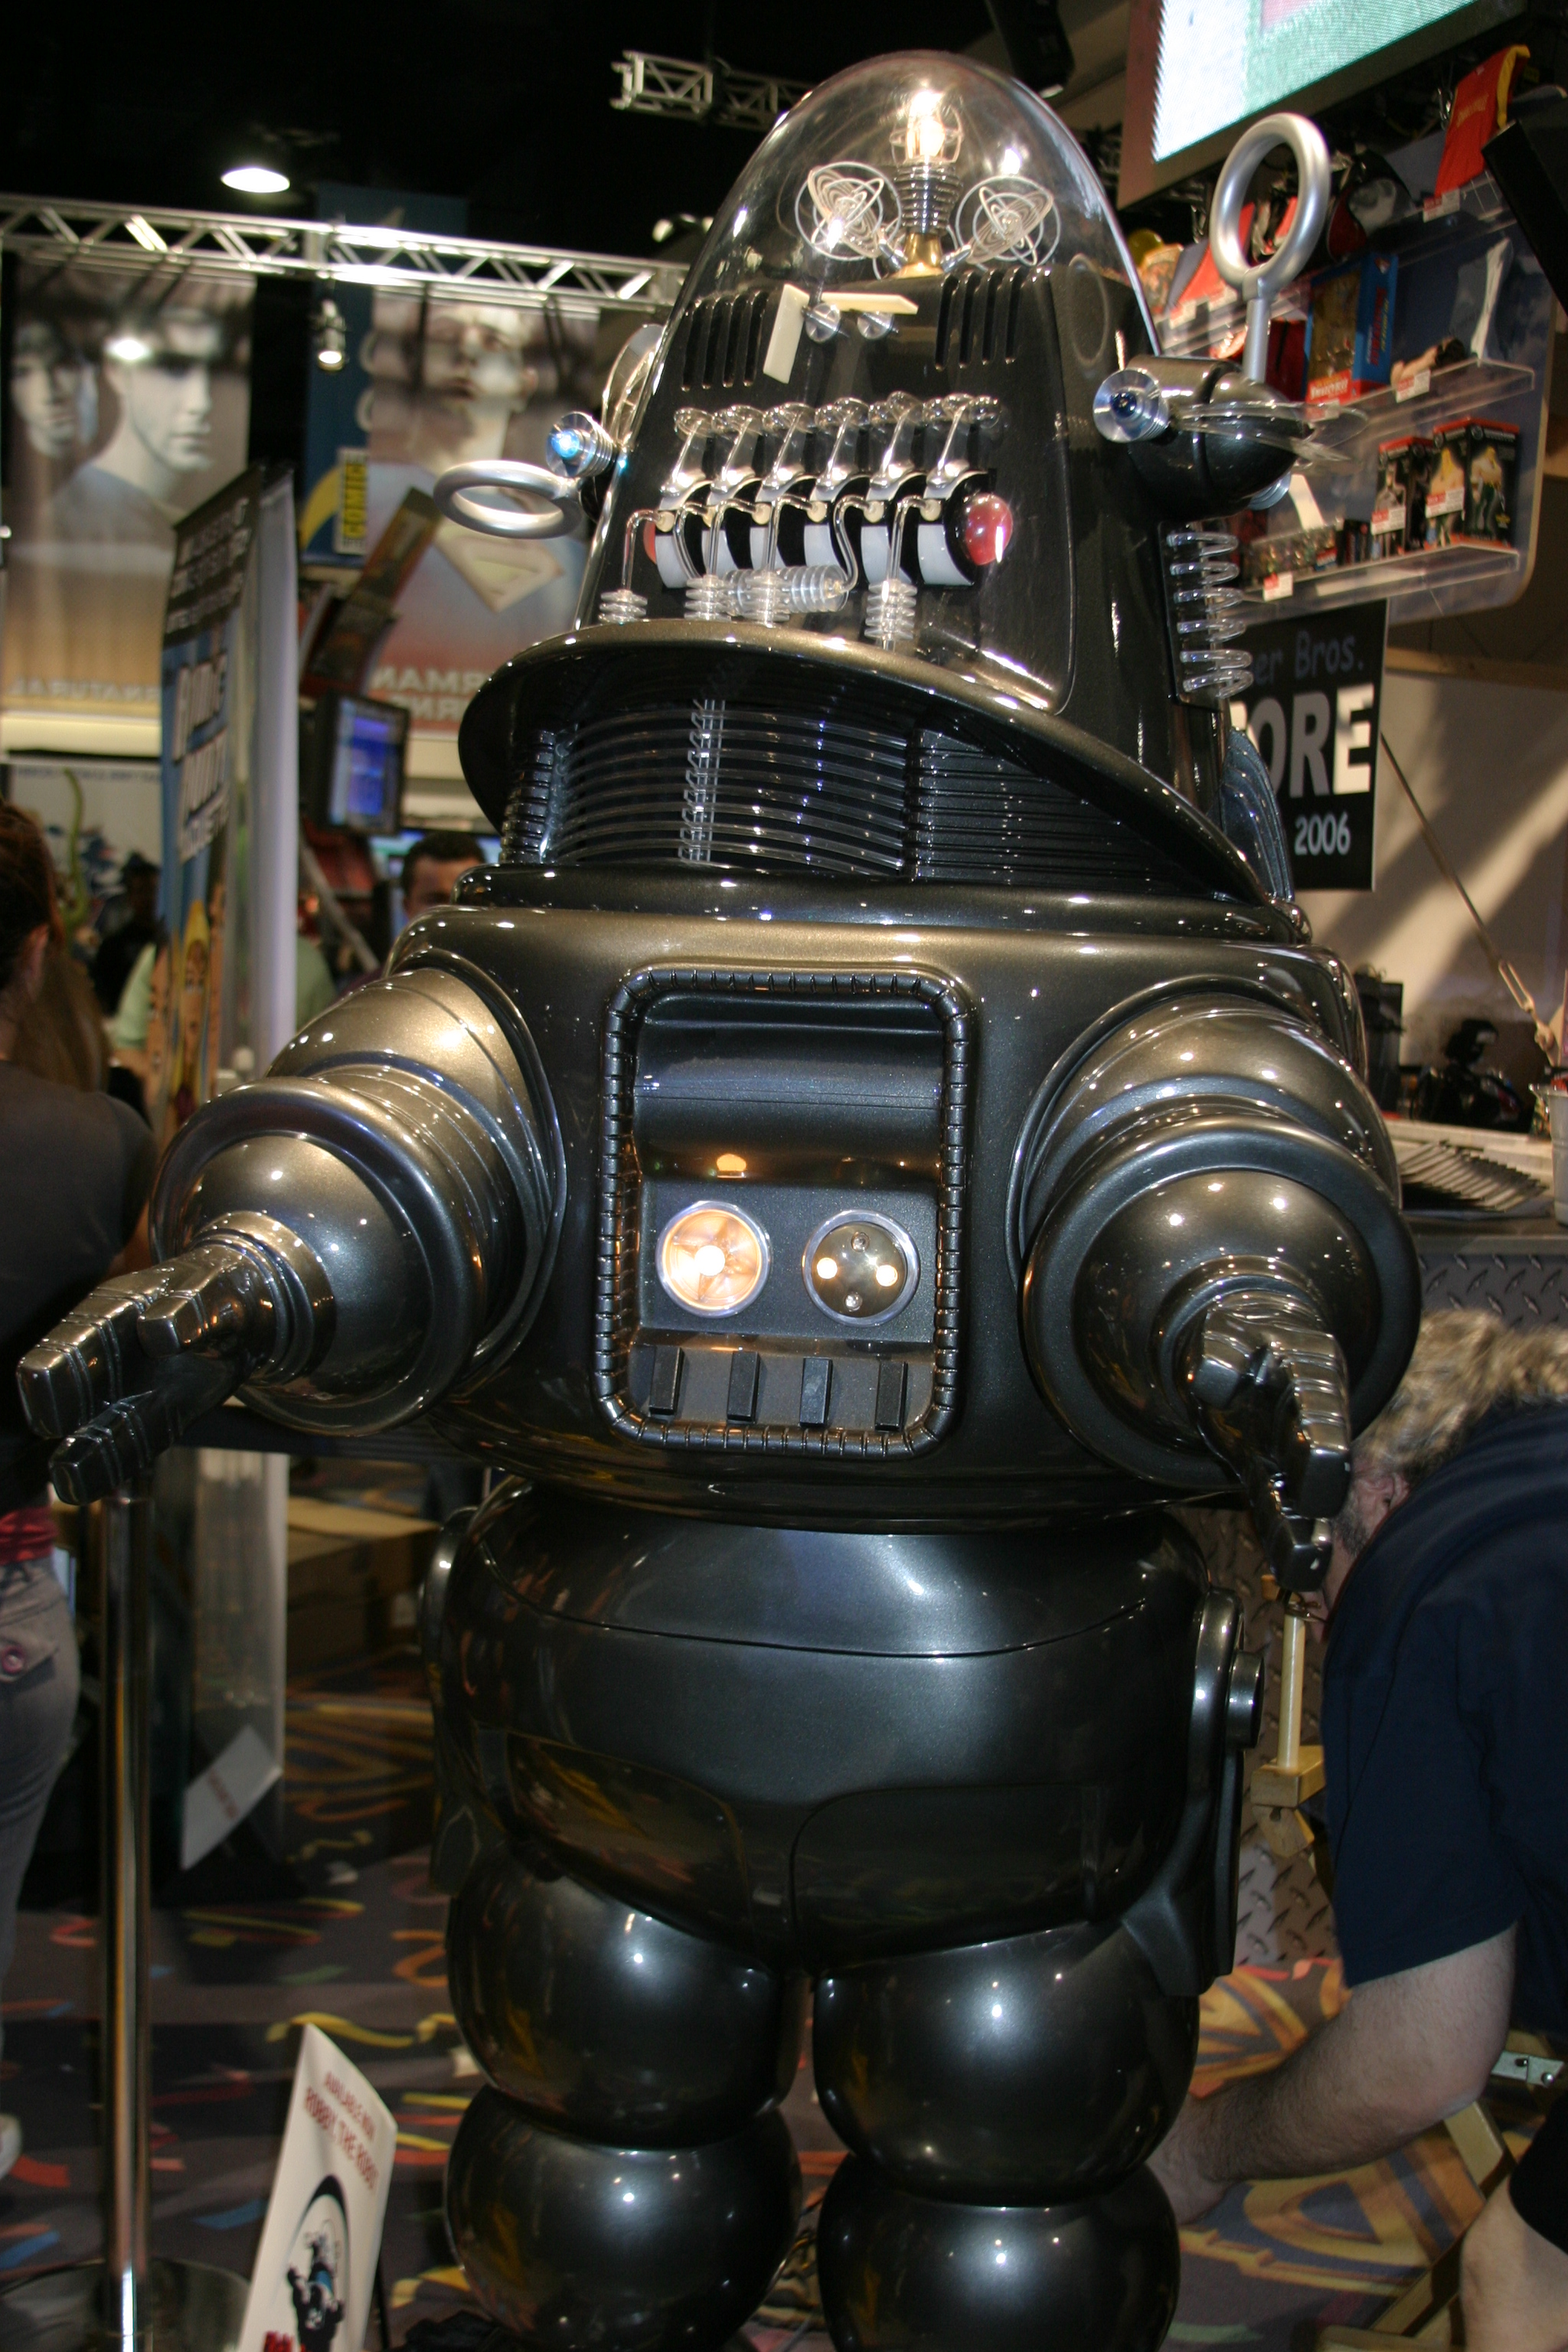 Robbie_the_Robot_2006